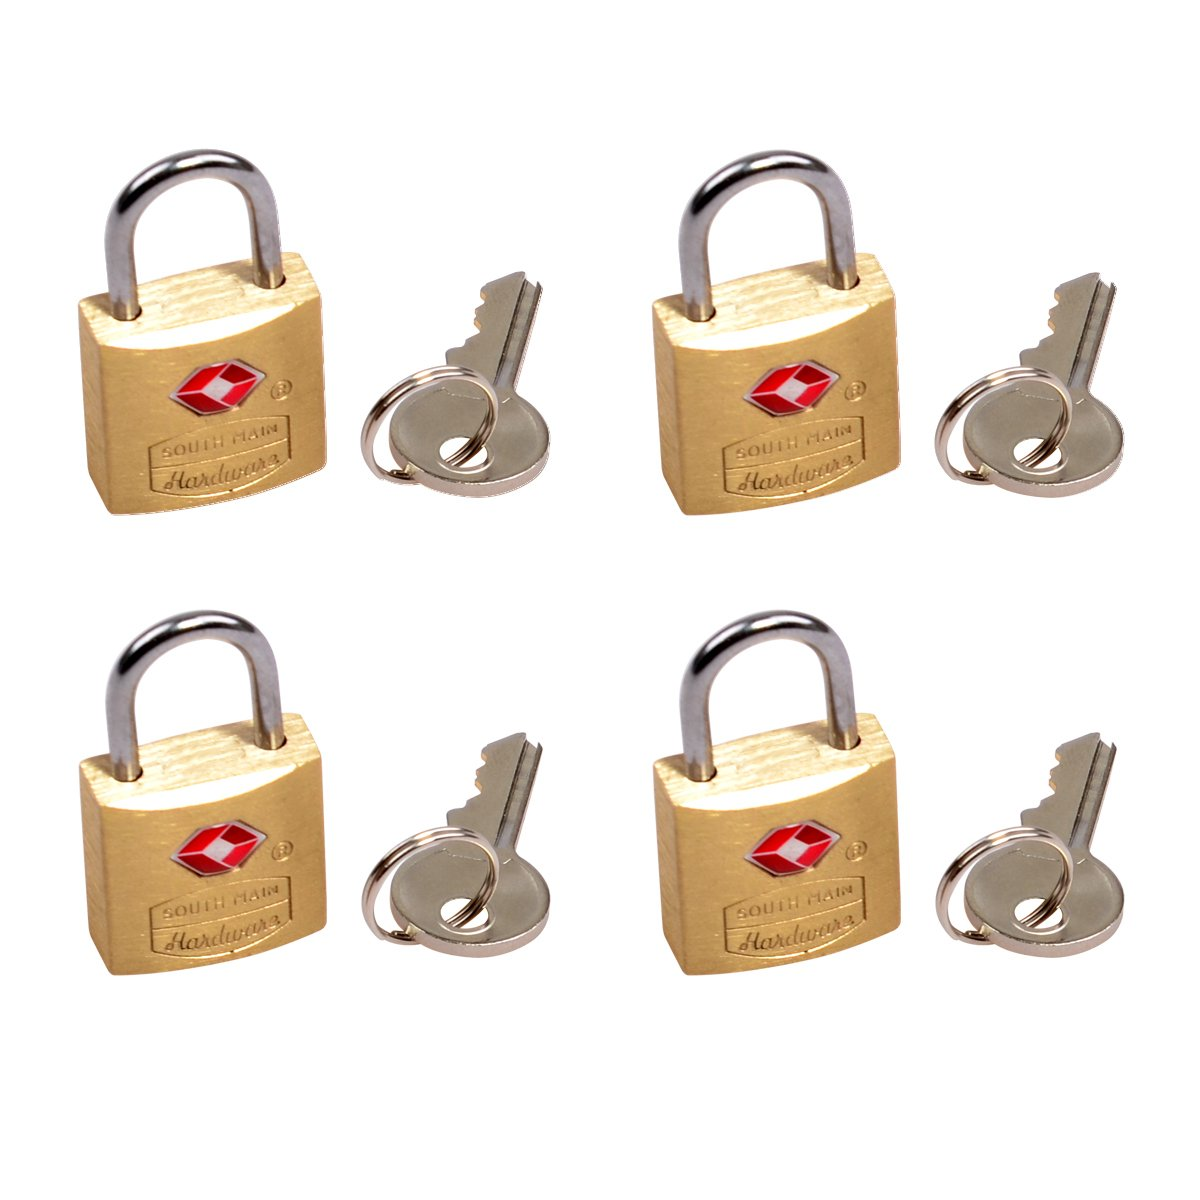 South Main Hardware 810106 TSA Approved Luggage Lock, 3/4'' Wide Body, Solid Brass (Pack of 4)